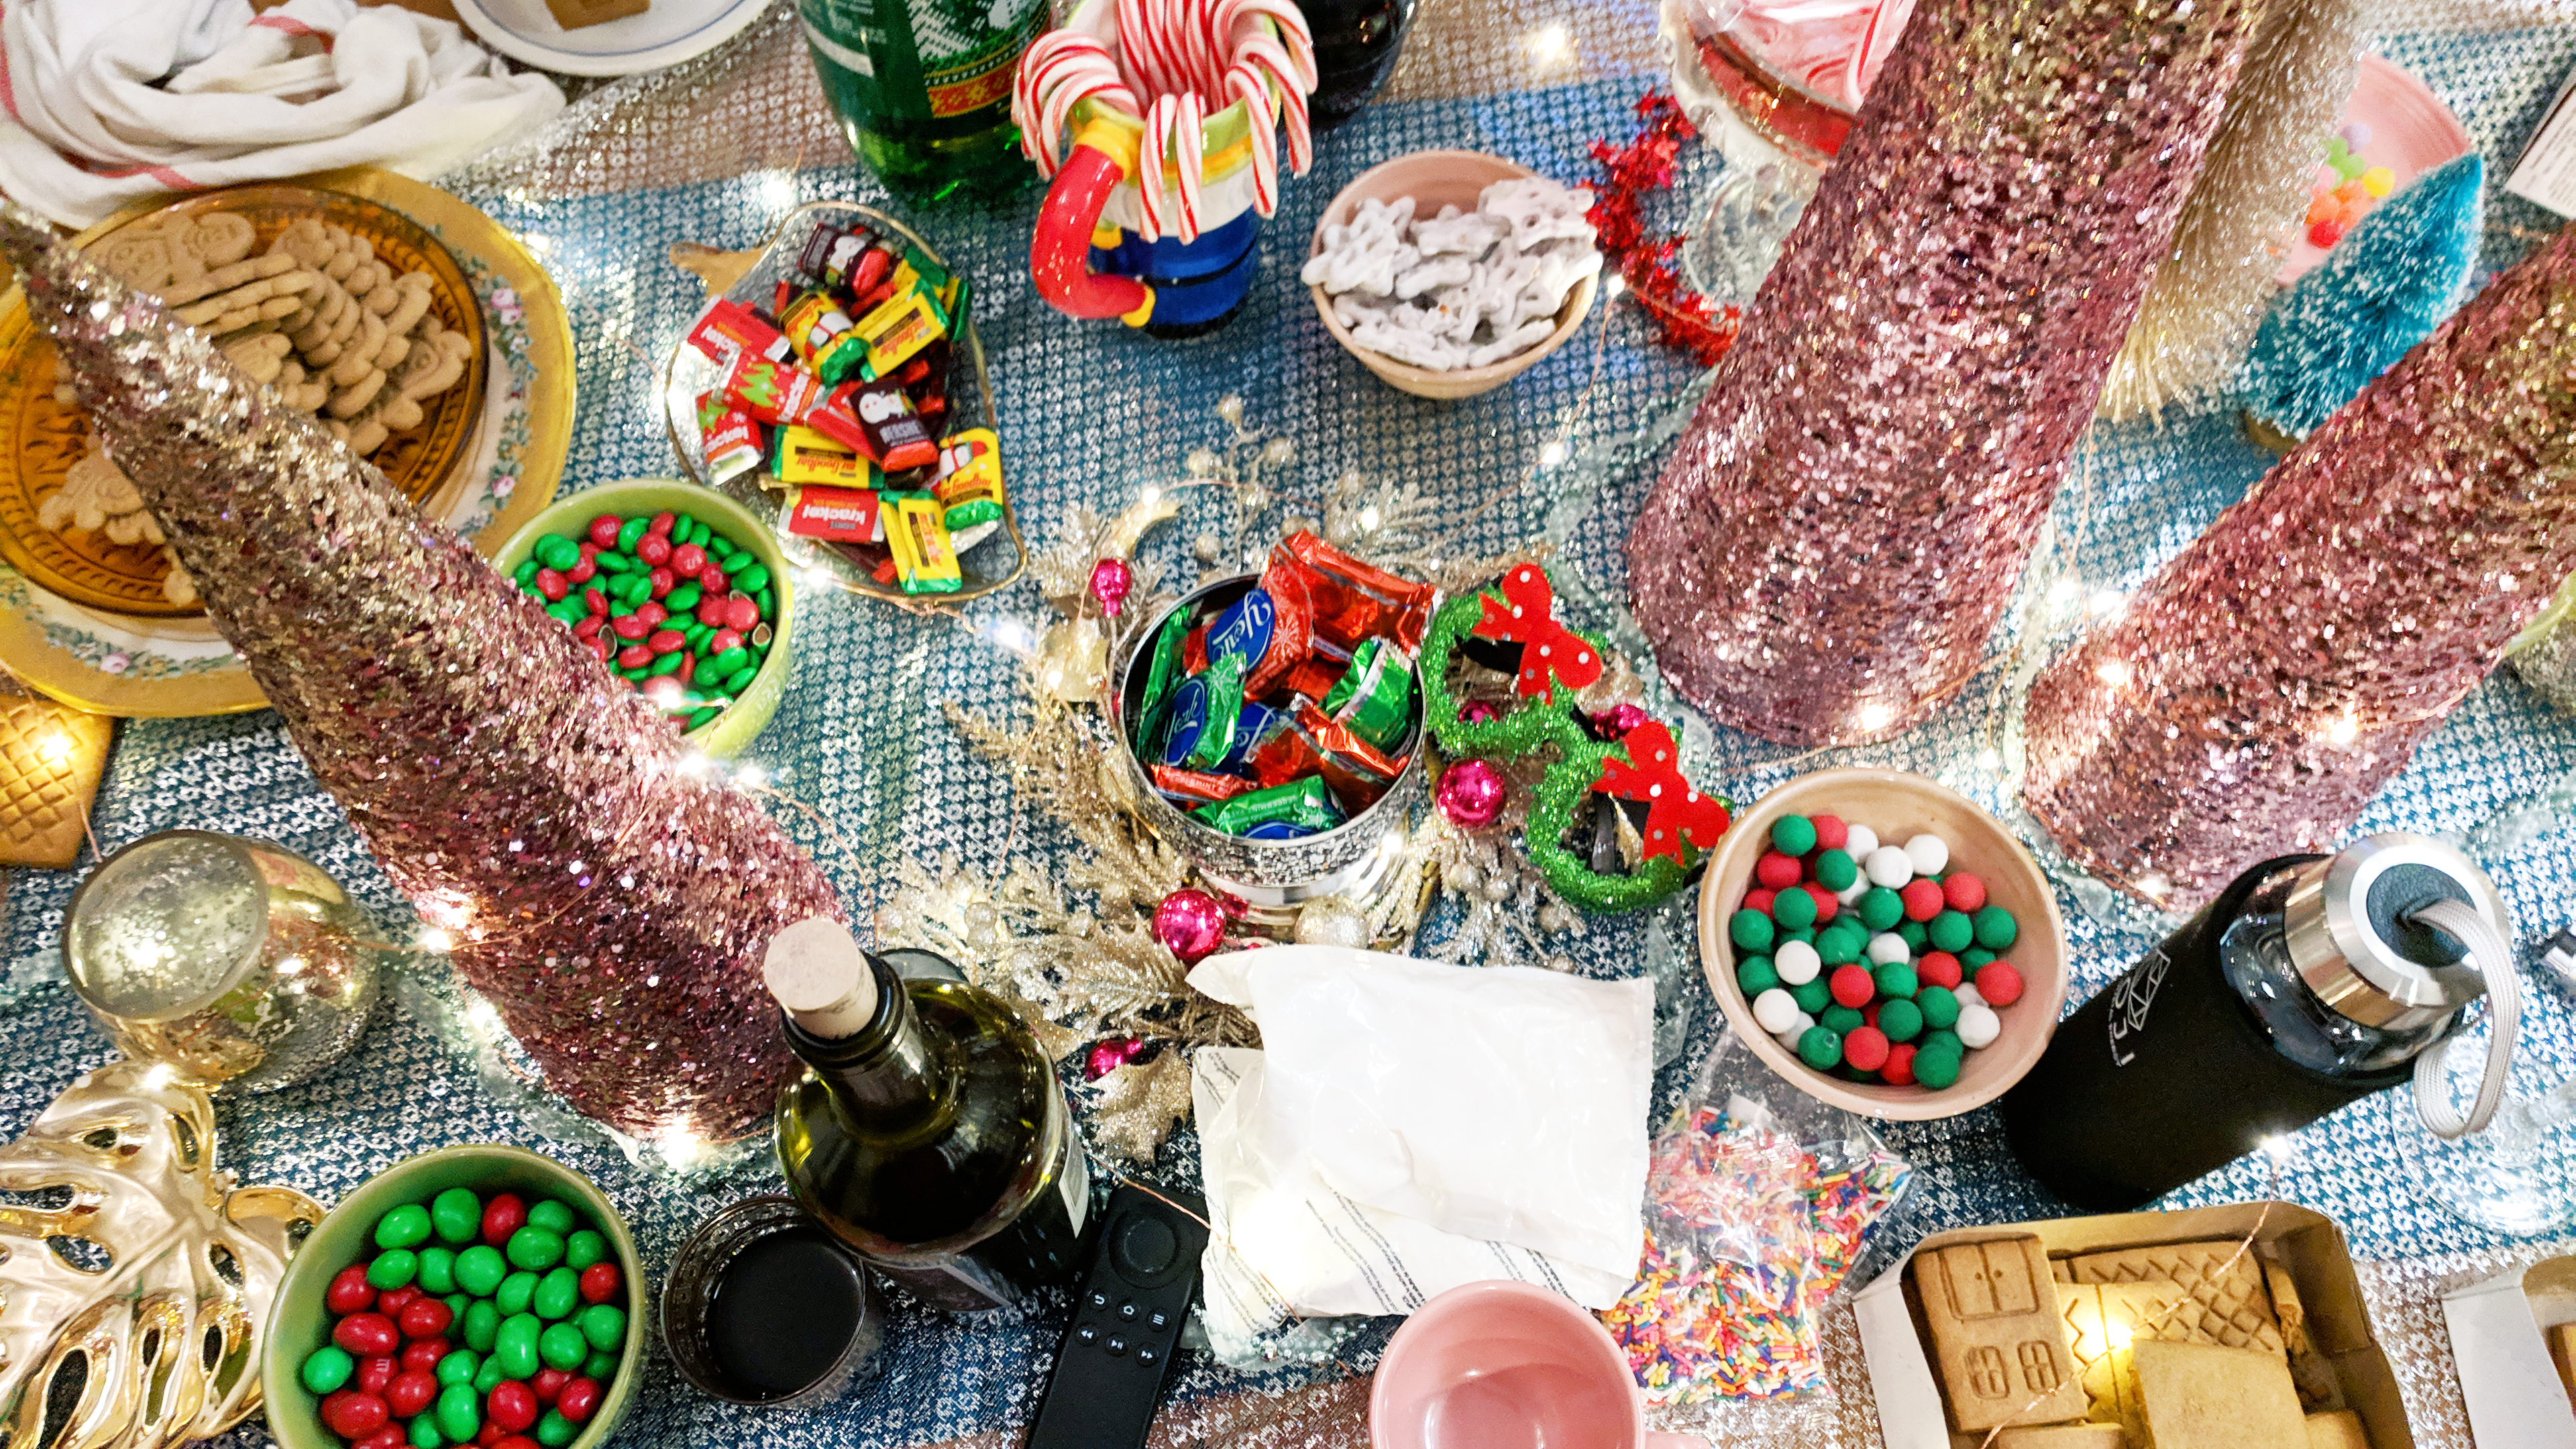 gingerbread house making party diy christmas ideas - Hey Mishka (12)